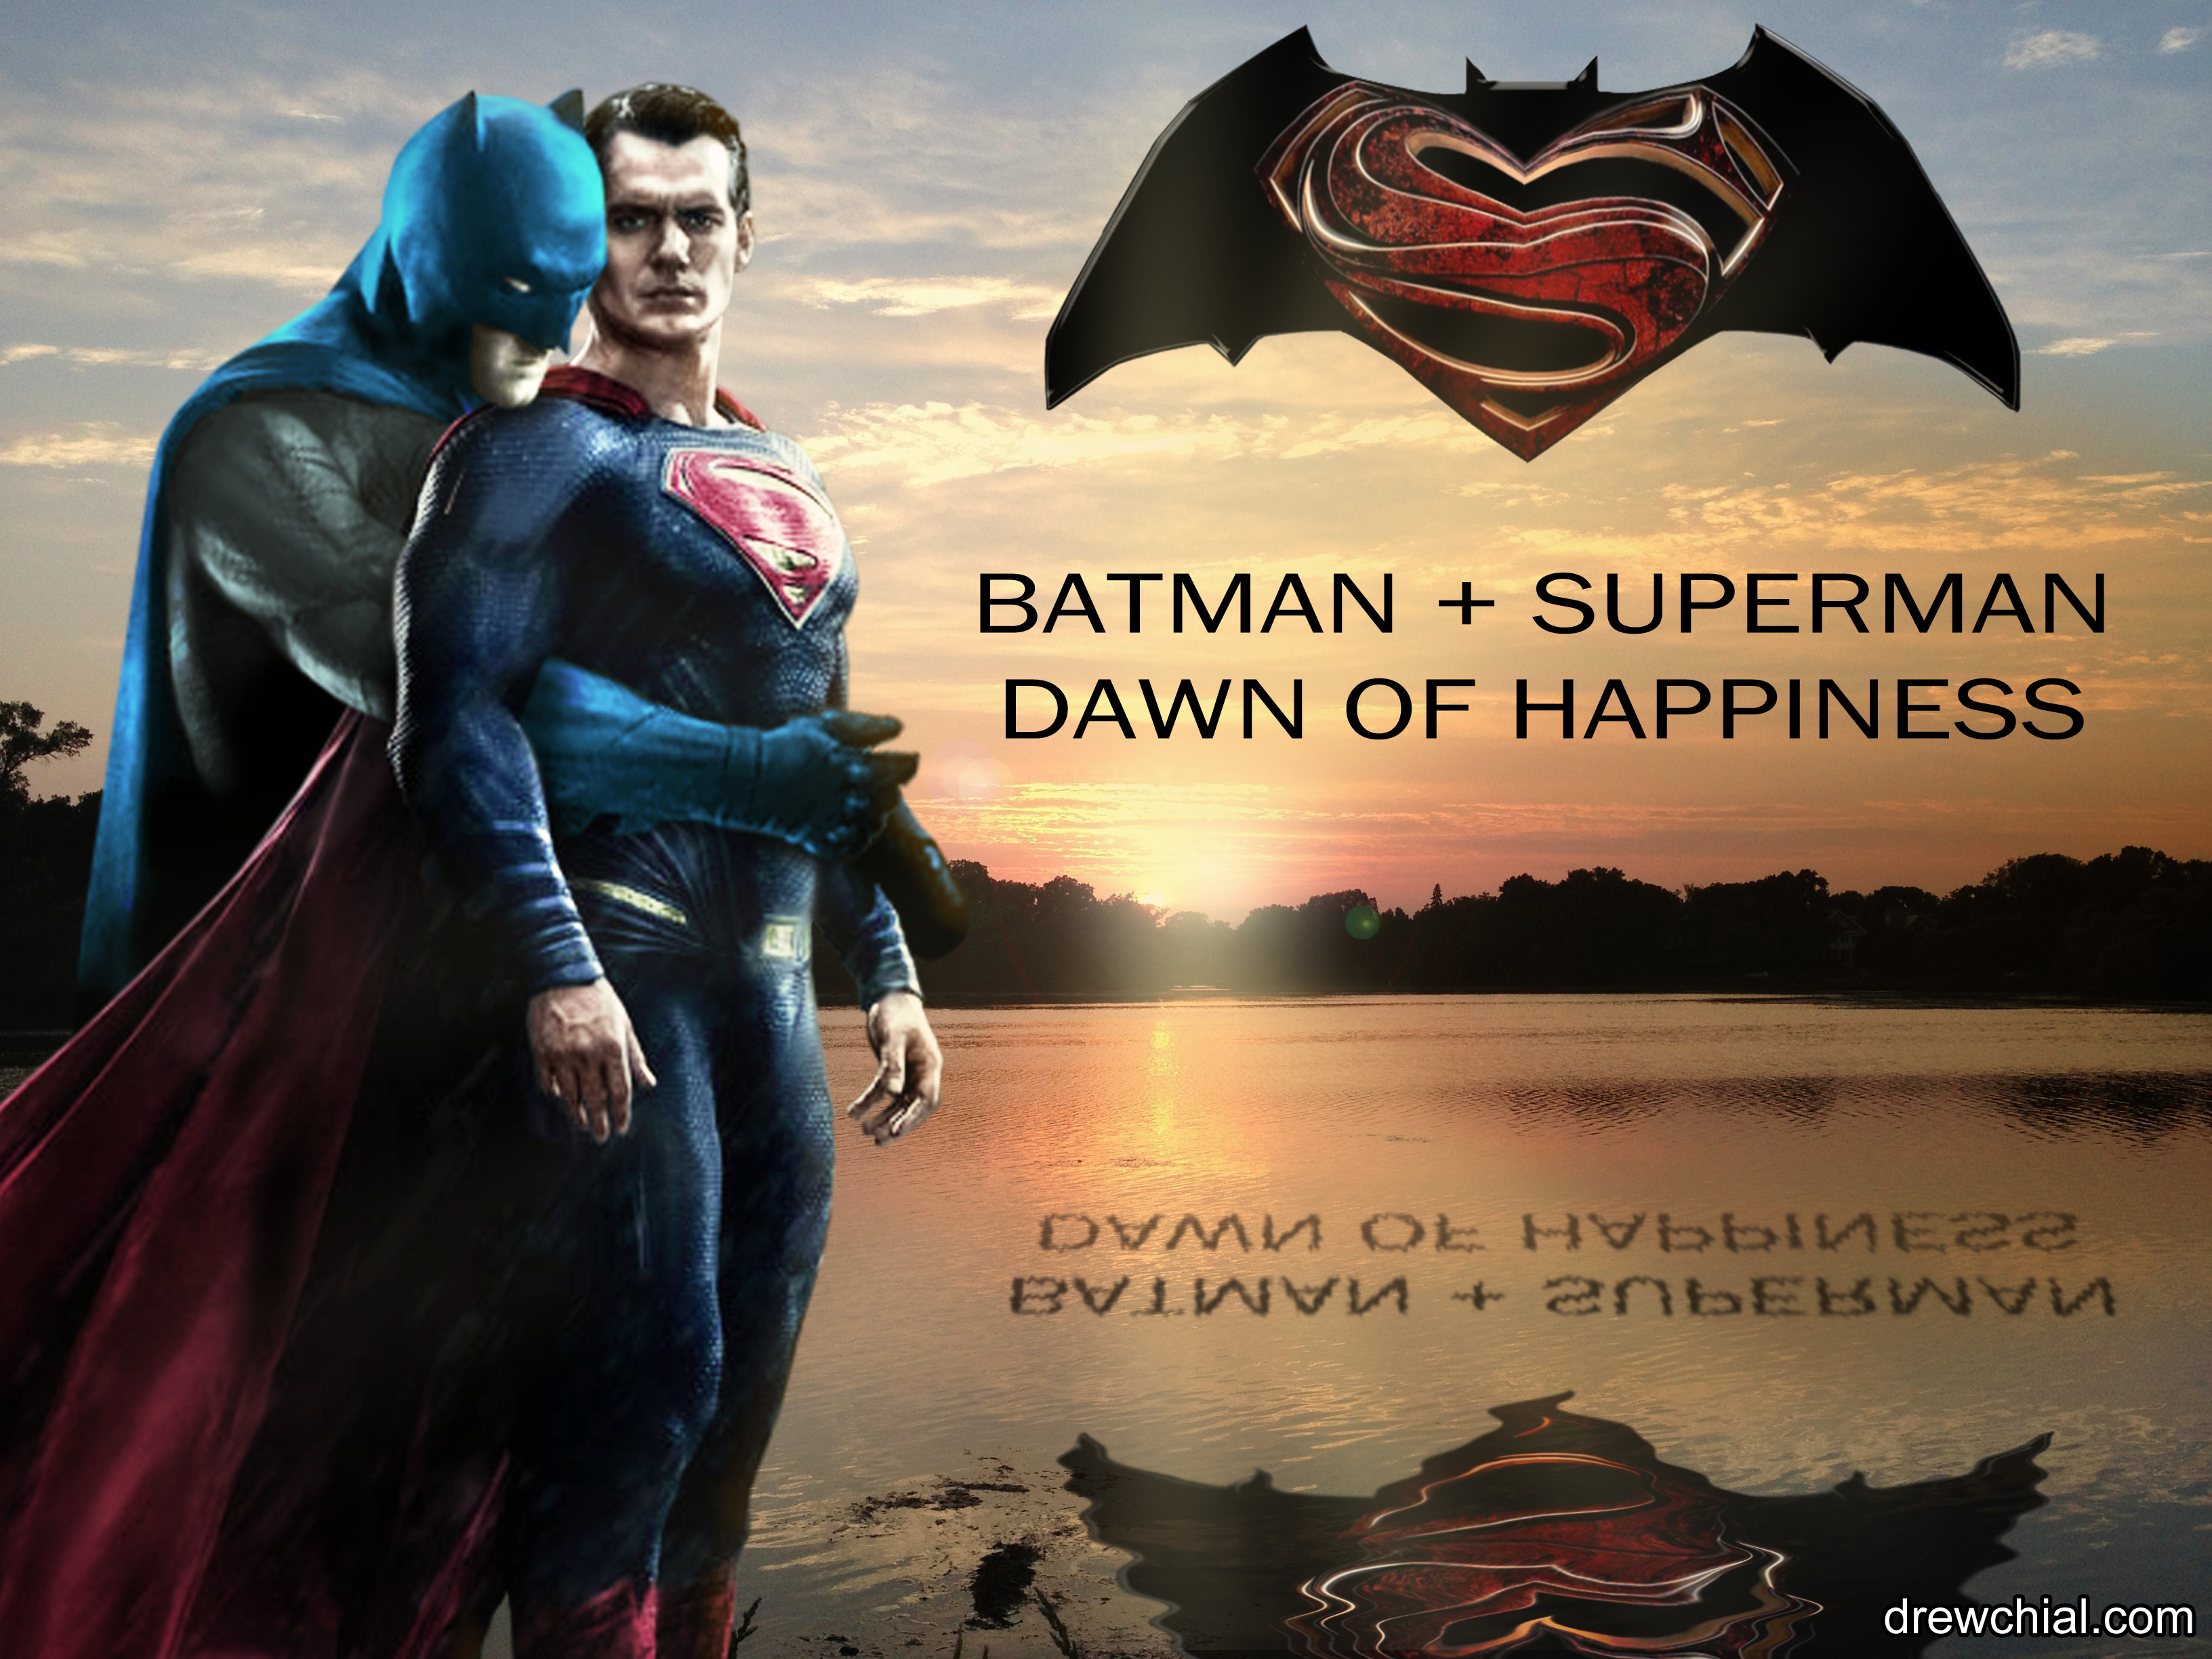 Funny As Memes: After Watching The Batman V Superman Ultimate Cut #movie